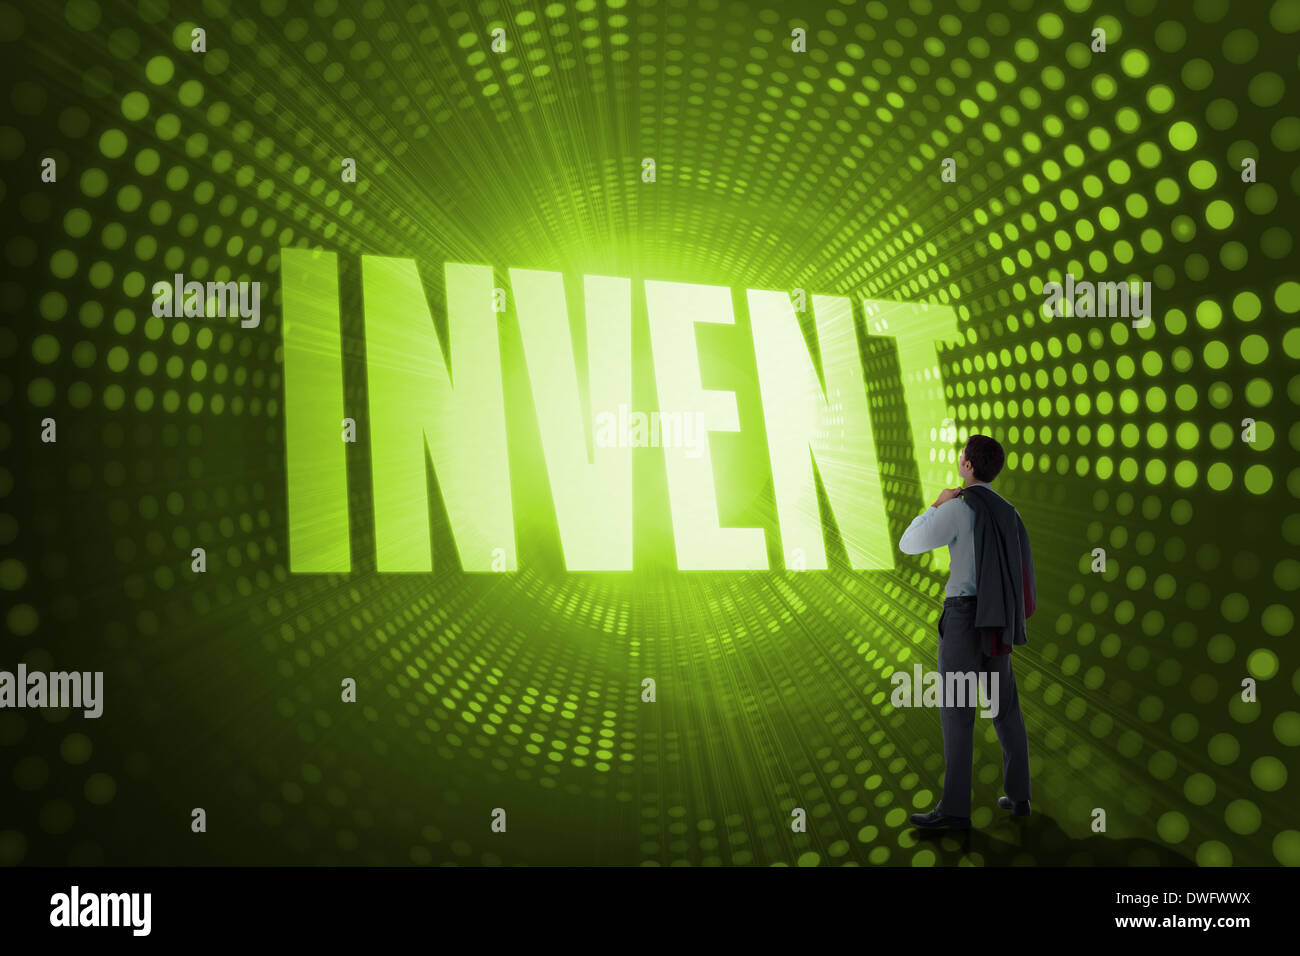 Invent against green pixel spiral - Stock Image